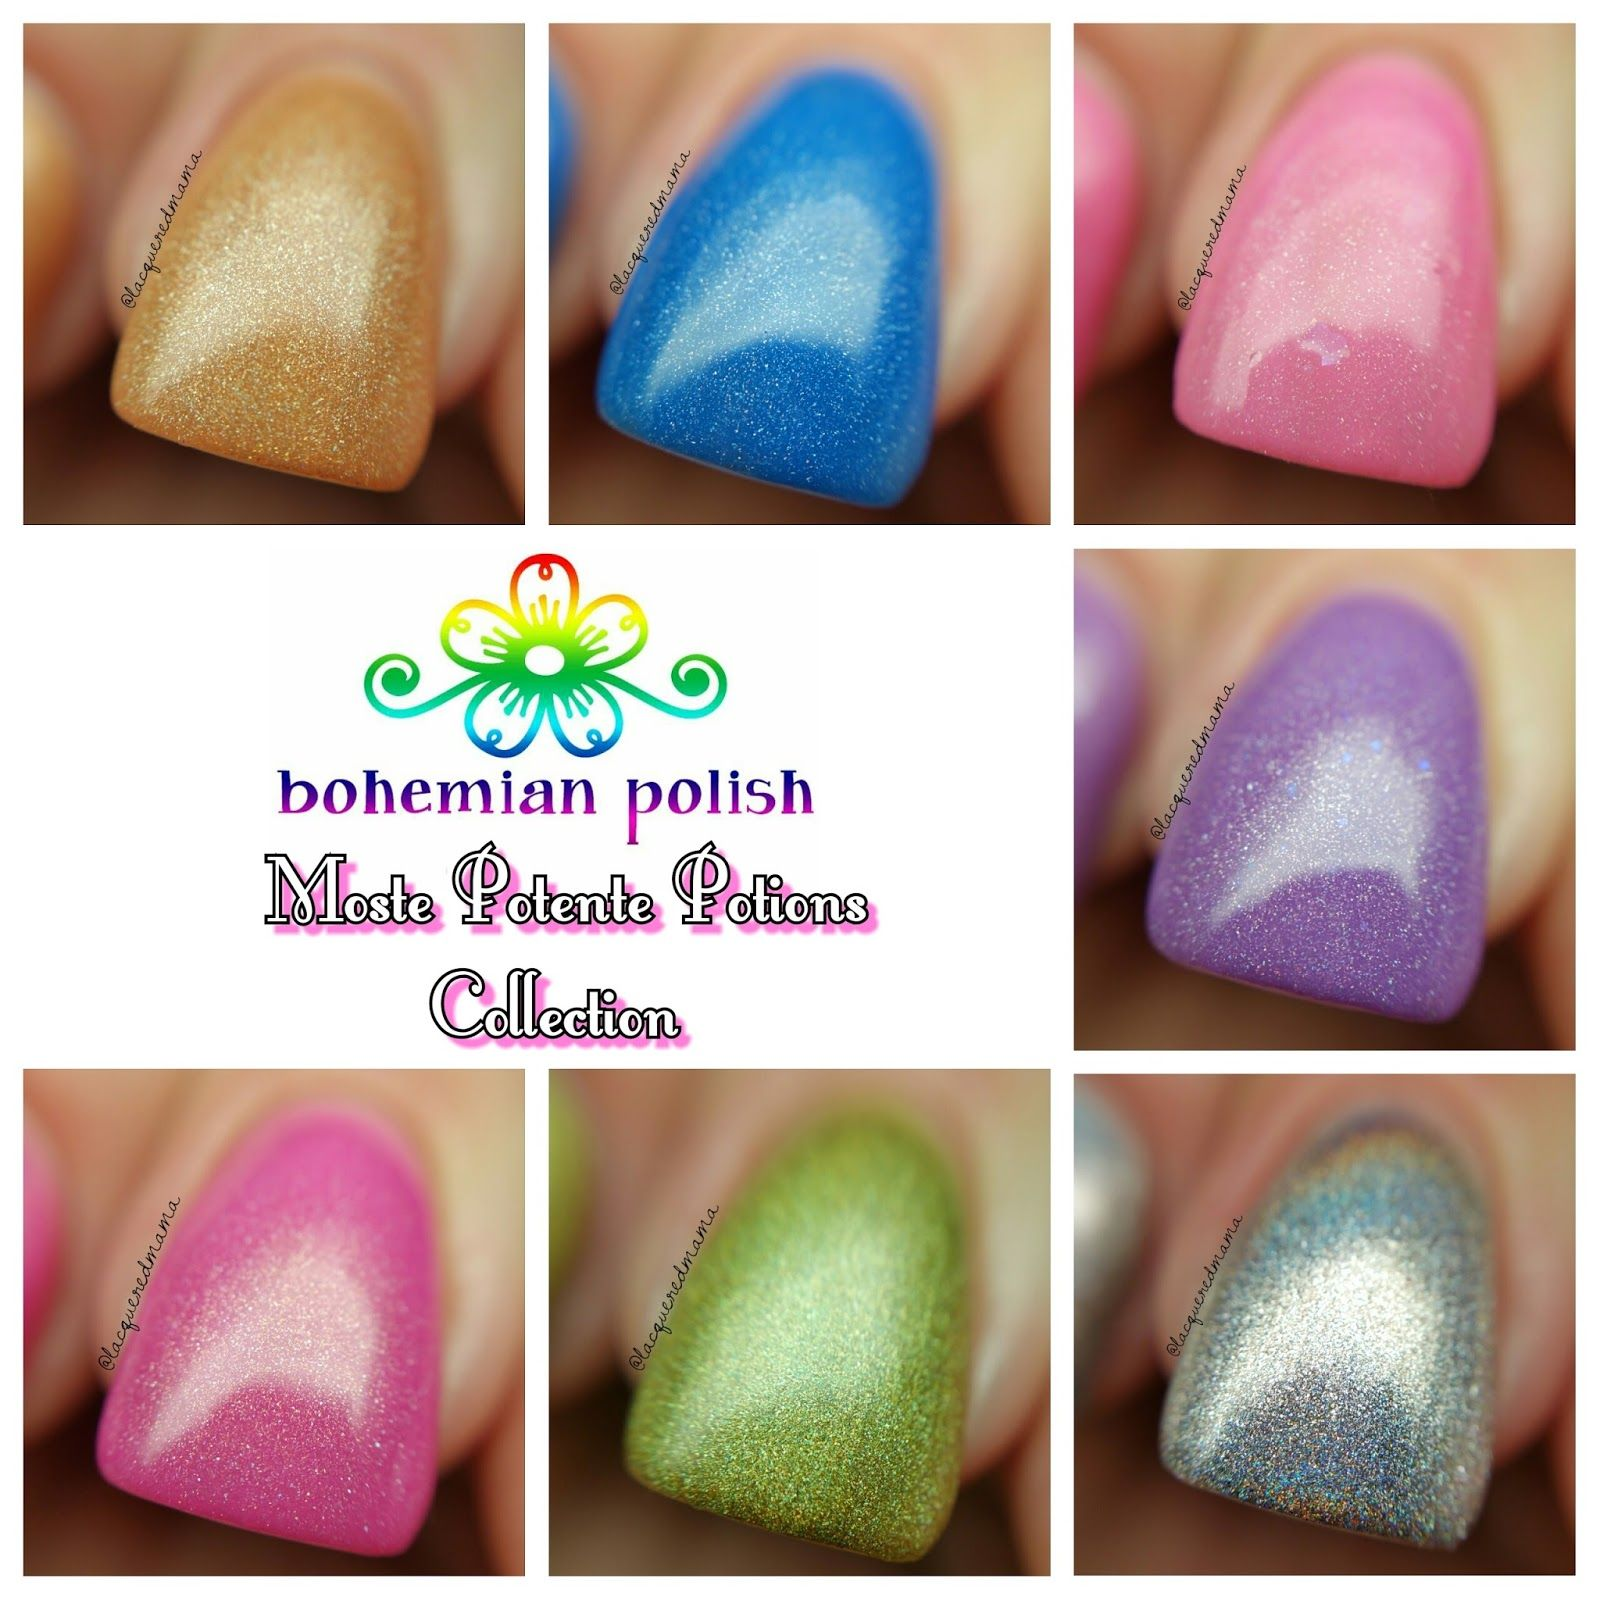 LacqueredMama: Bohemian Polish - Moste Potente Potions Collection (swatches and review)